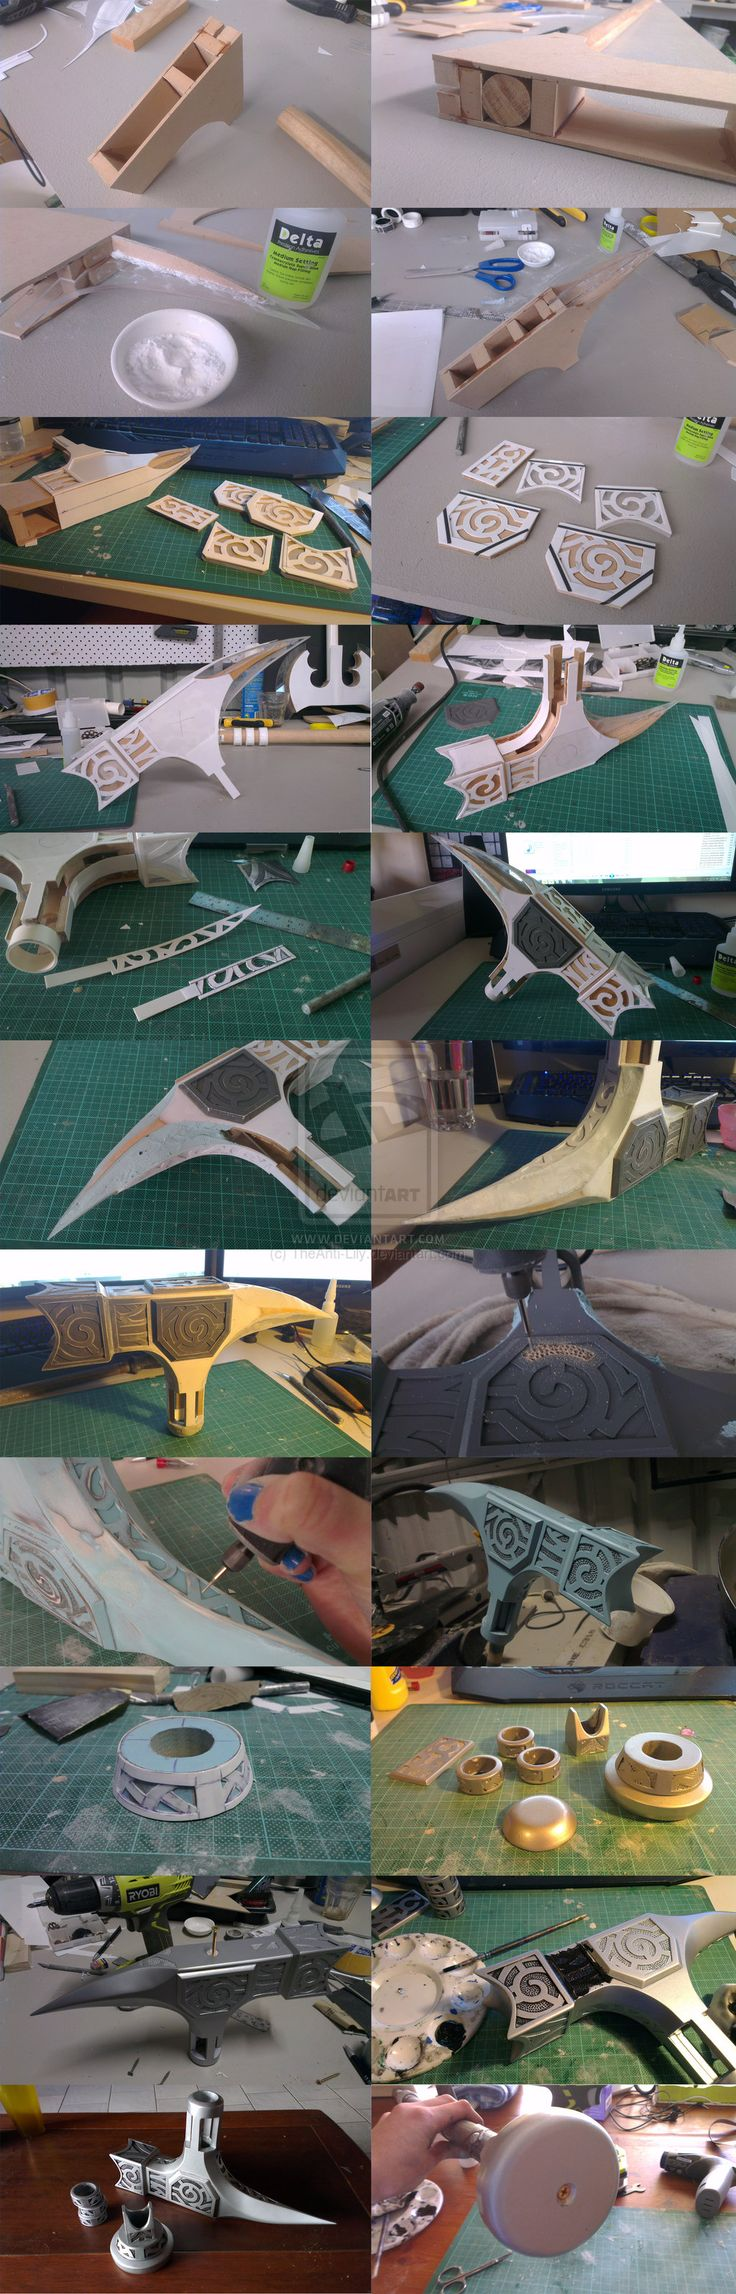 Skyrim Steel Hammer WIP by TheAnti-Lily on deviantART weapon cosplay costume LARP resource tool how to tutorial instructions   Create your own roleplaying game material w/ RPG Bard: www.rpgbard.com   Writing inspiration for Dungeons and Dragons DND D&D Pathfinder PFRPG Warhammer 40k Star Wars Shadowrun Call of Cthulhu Lord of the Rings LoTR + d20 fantasy science fiction scifi horror design   Not Trusty Sword art: click artwork for source